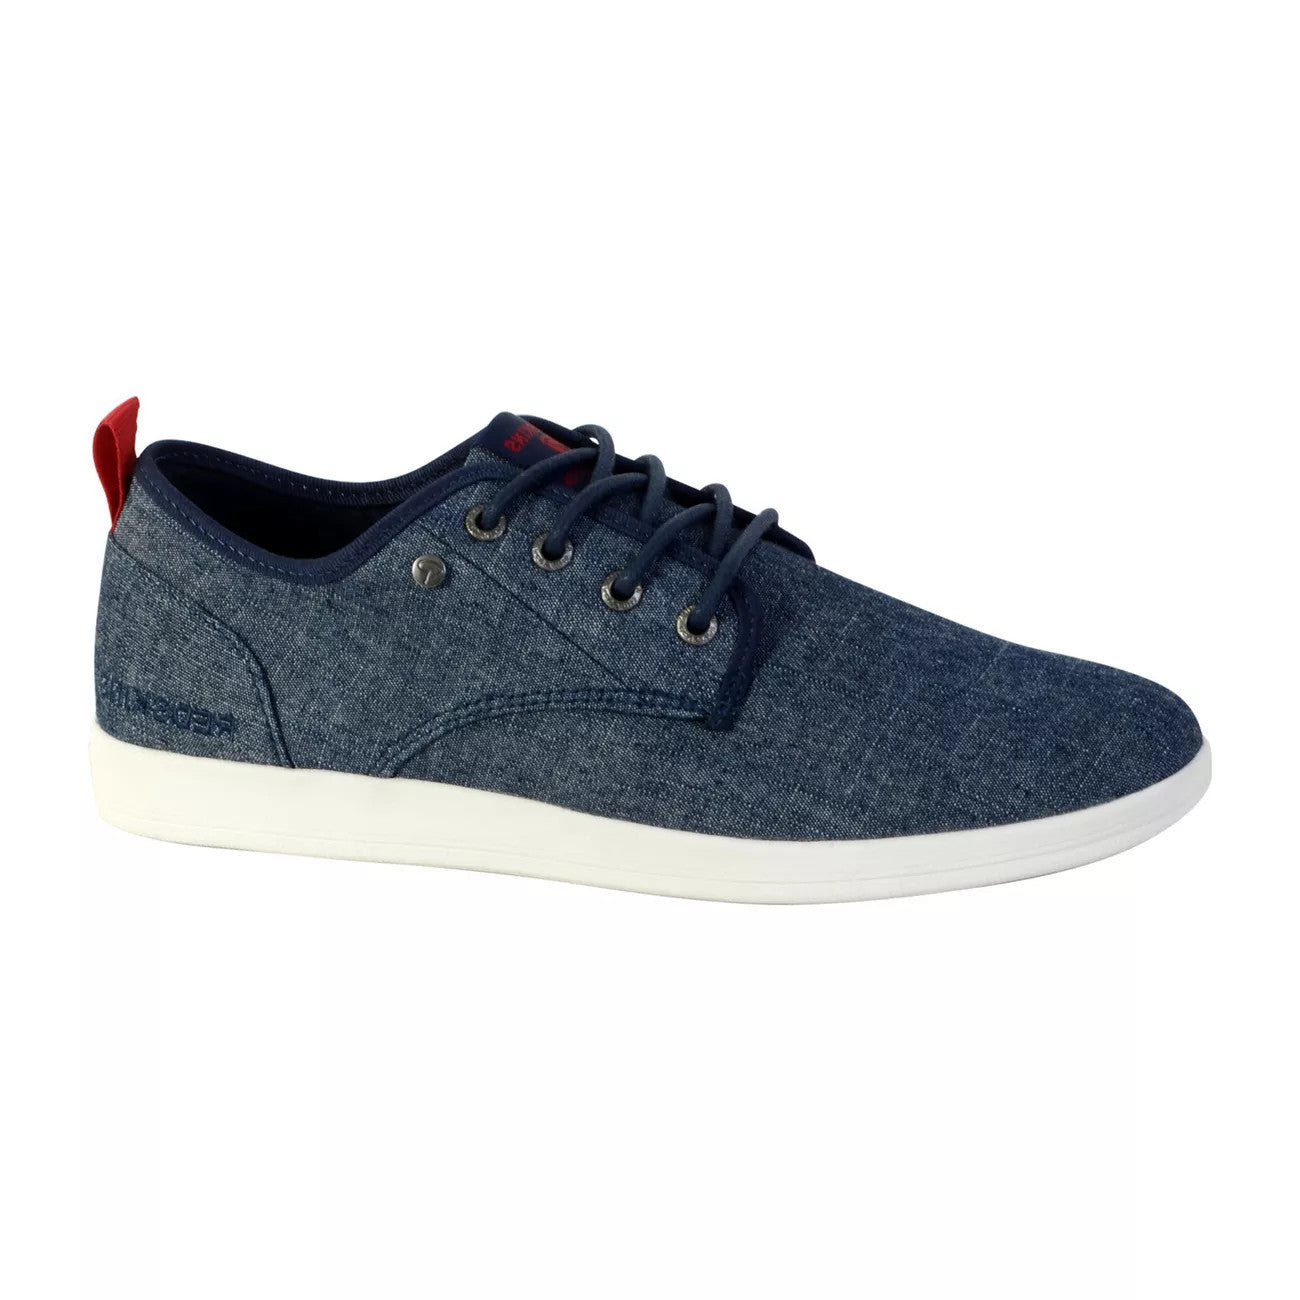 Shoes Men Casual  | Denim